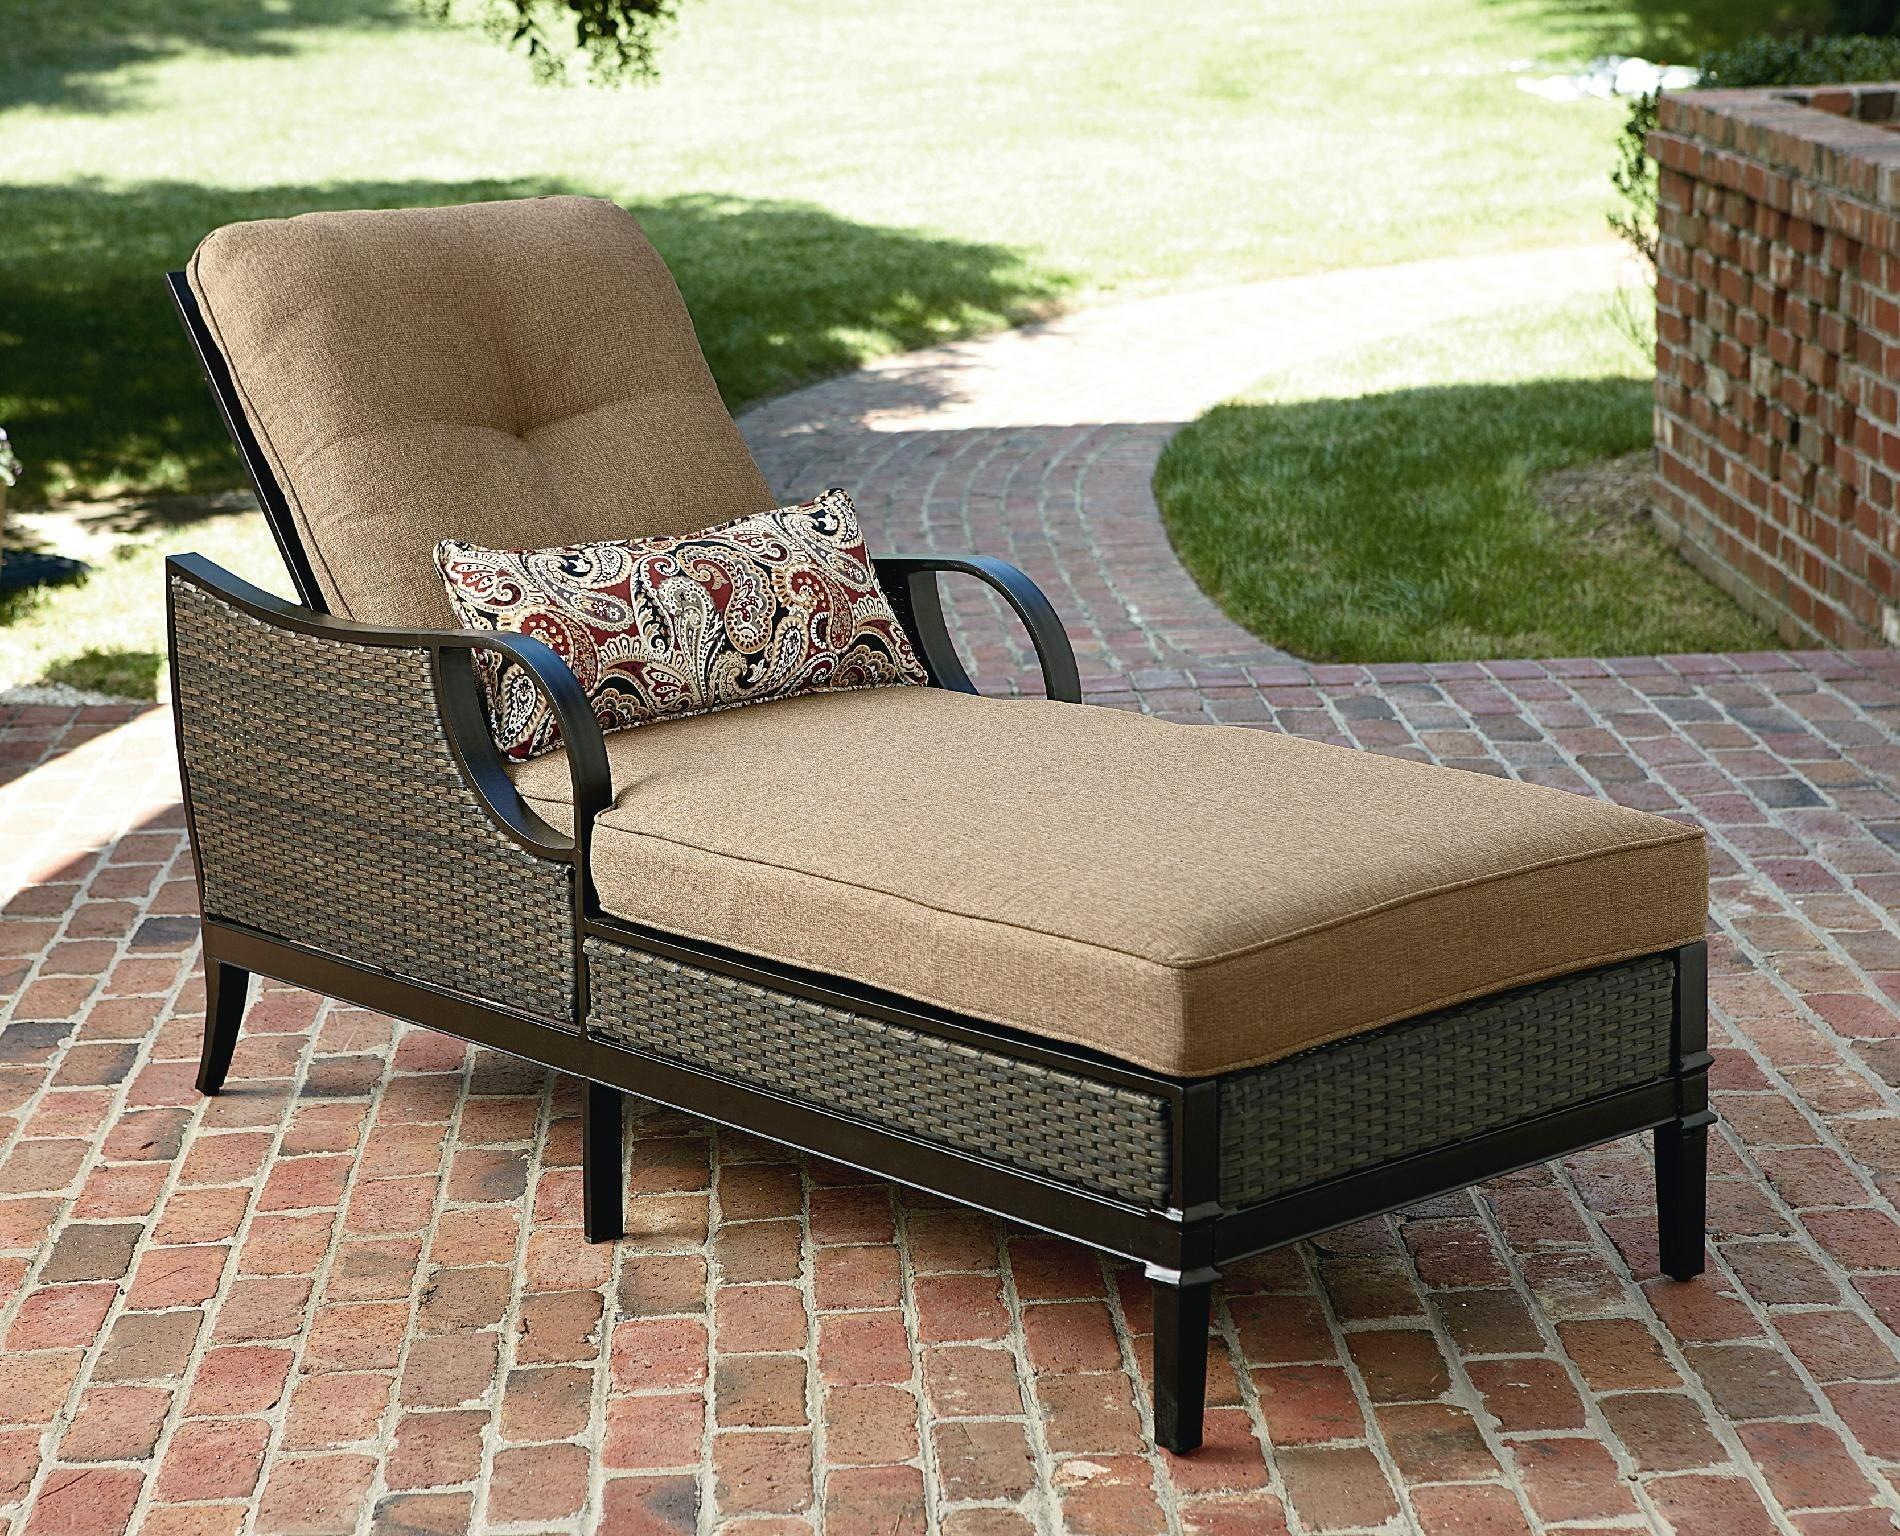 Outdoor Furniture Chaise Lounge Metal Frame Zebra Print